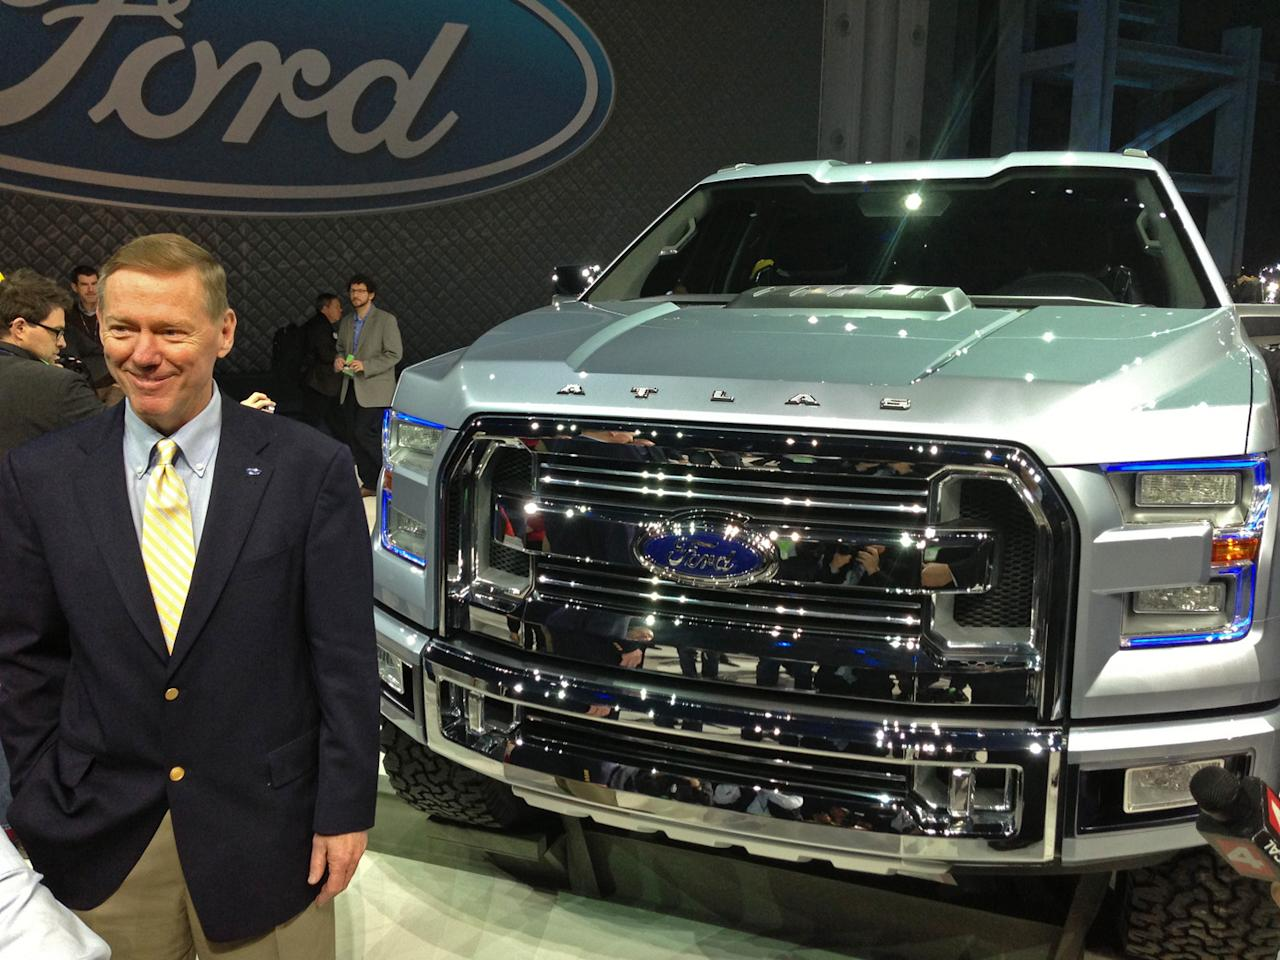 Ford Chief Executive Alan Mulally with the Ford Atlas concept